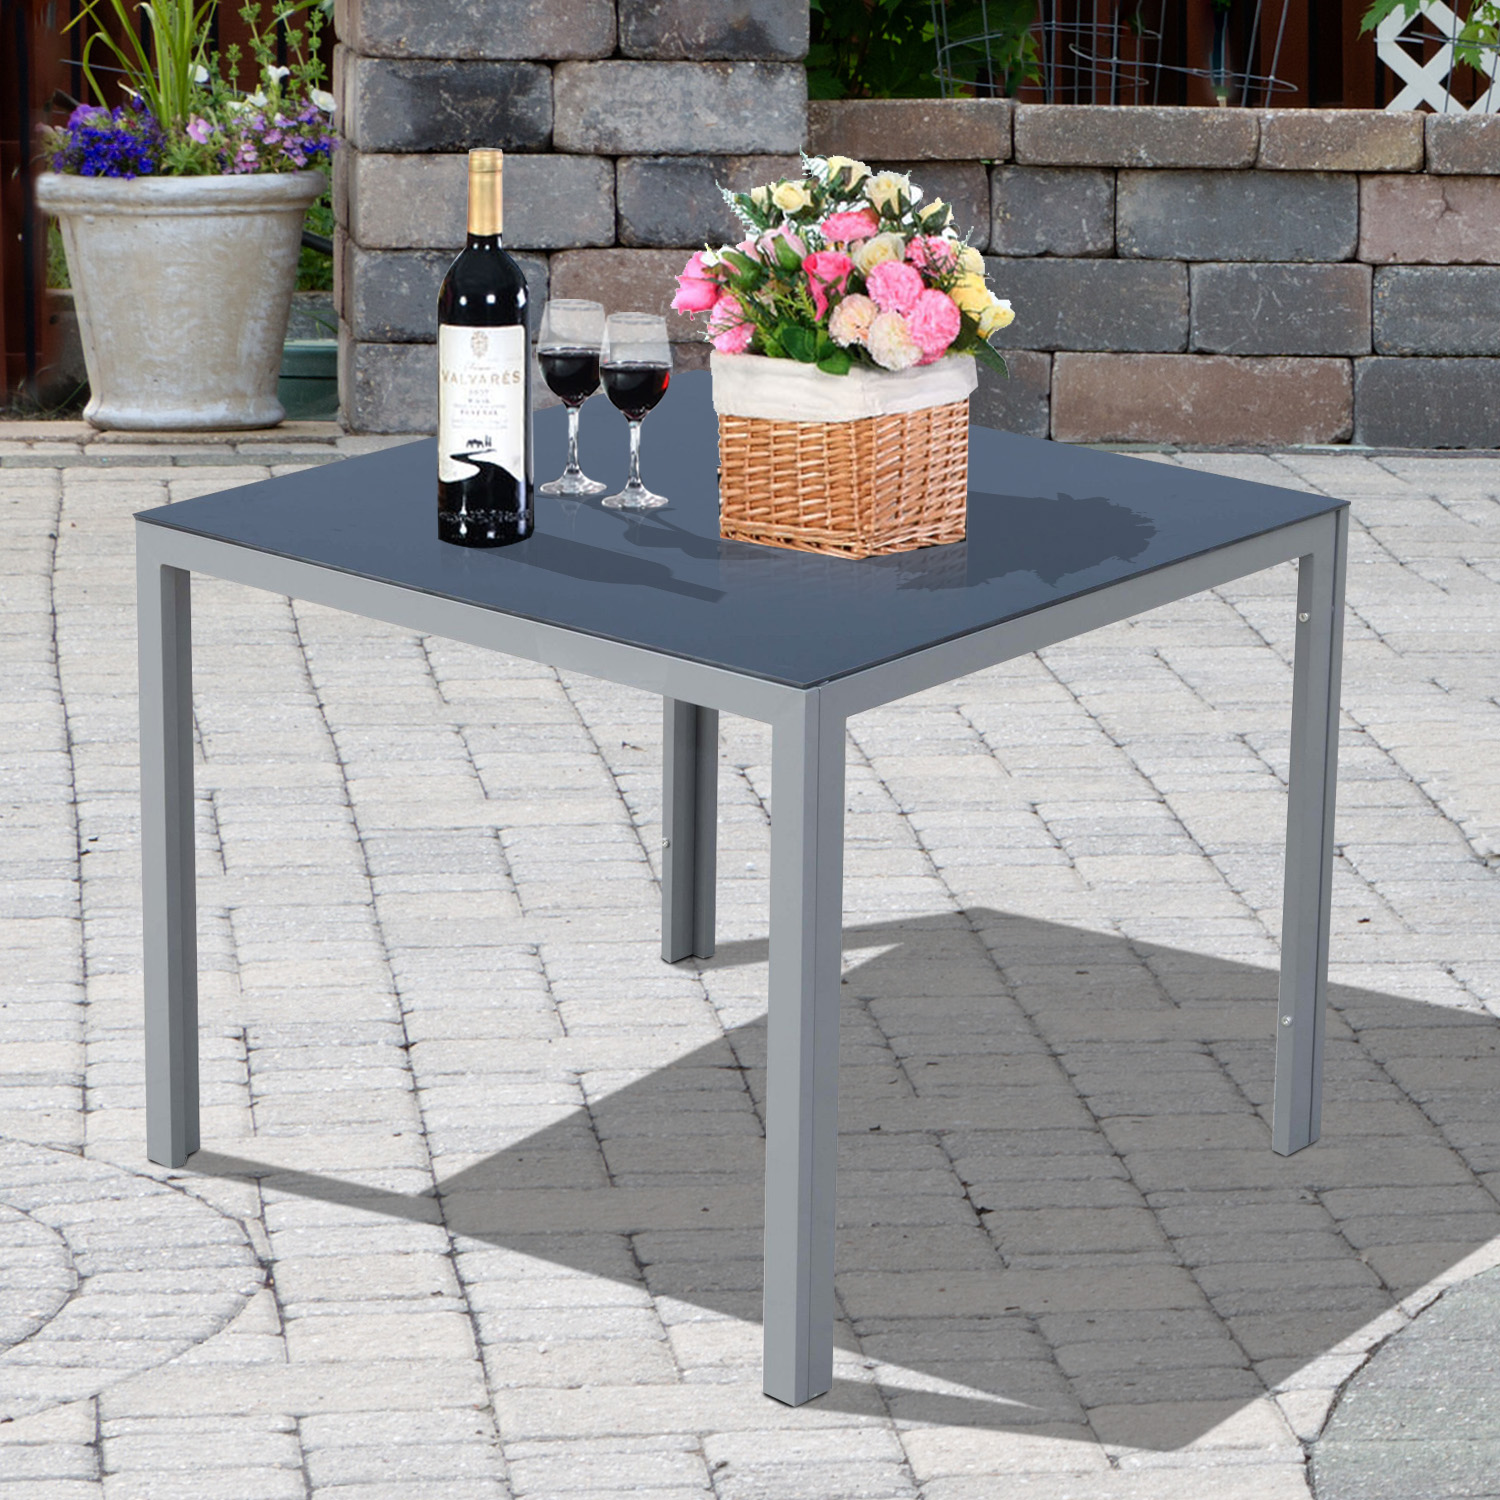 "Image of CAD $69.99 Outsunny 34""x34"" Garden Table Dining Desk Tempered Glass Tabletop Backyard Aluminum / CLEARANCE 34"" Top Outdoor Canada 25093584725"